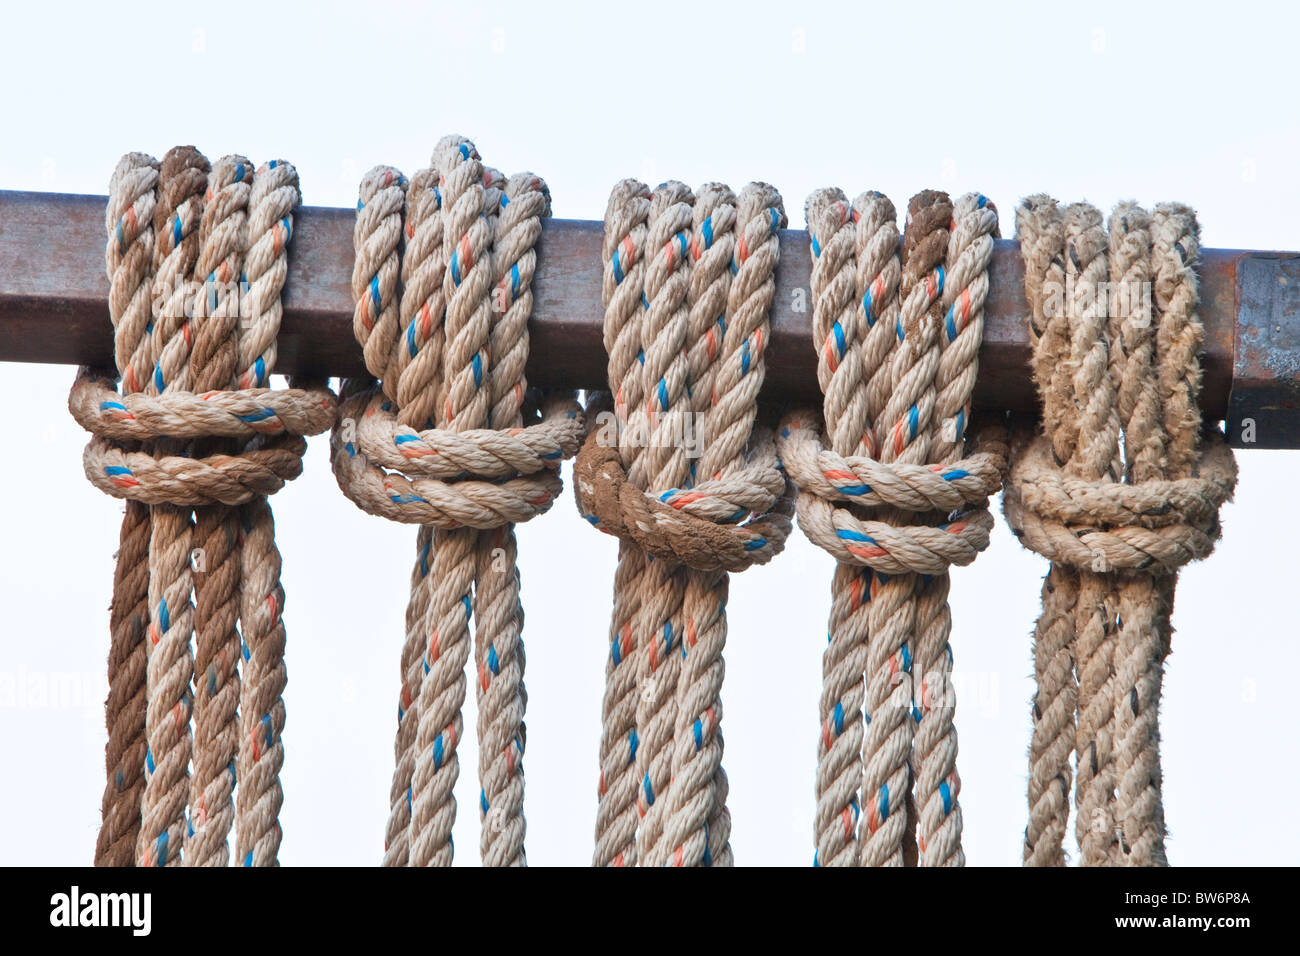 Reverse Lark's Head knots, color flecked rope. - Stock Image